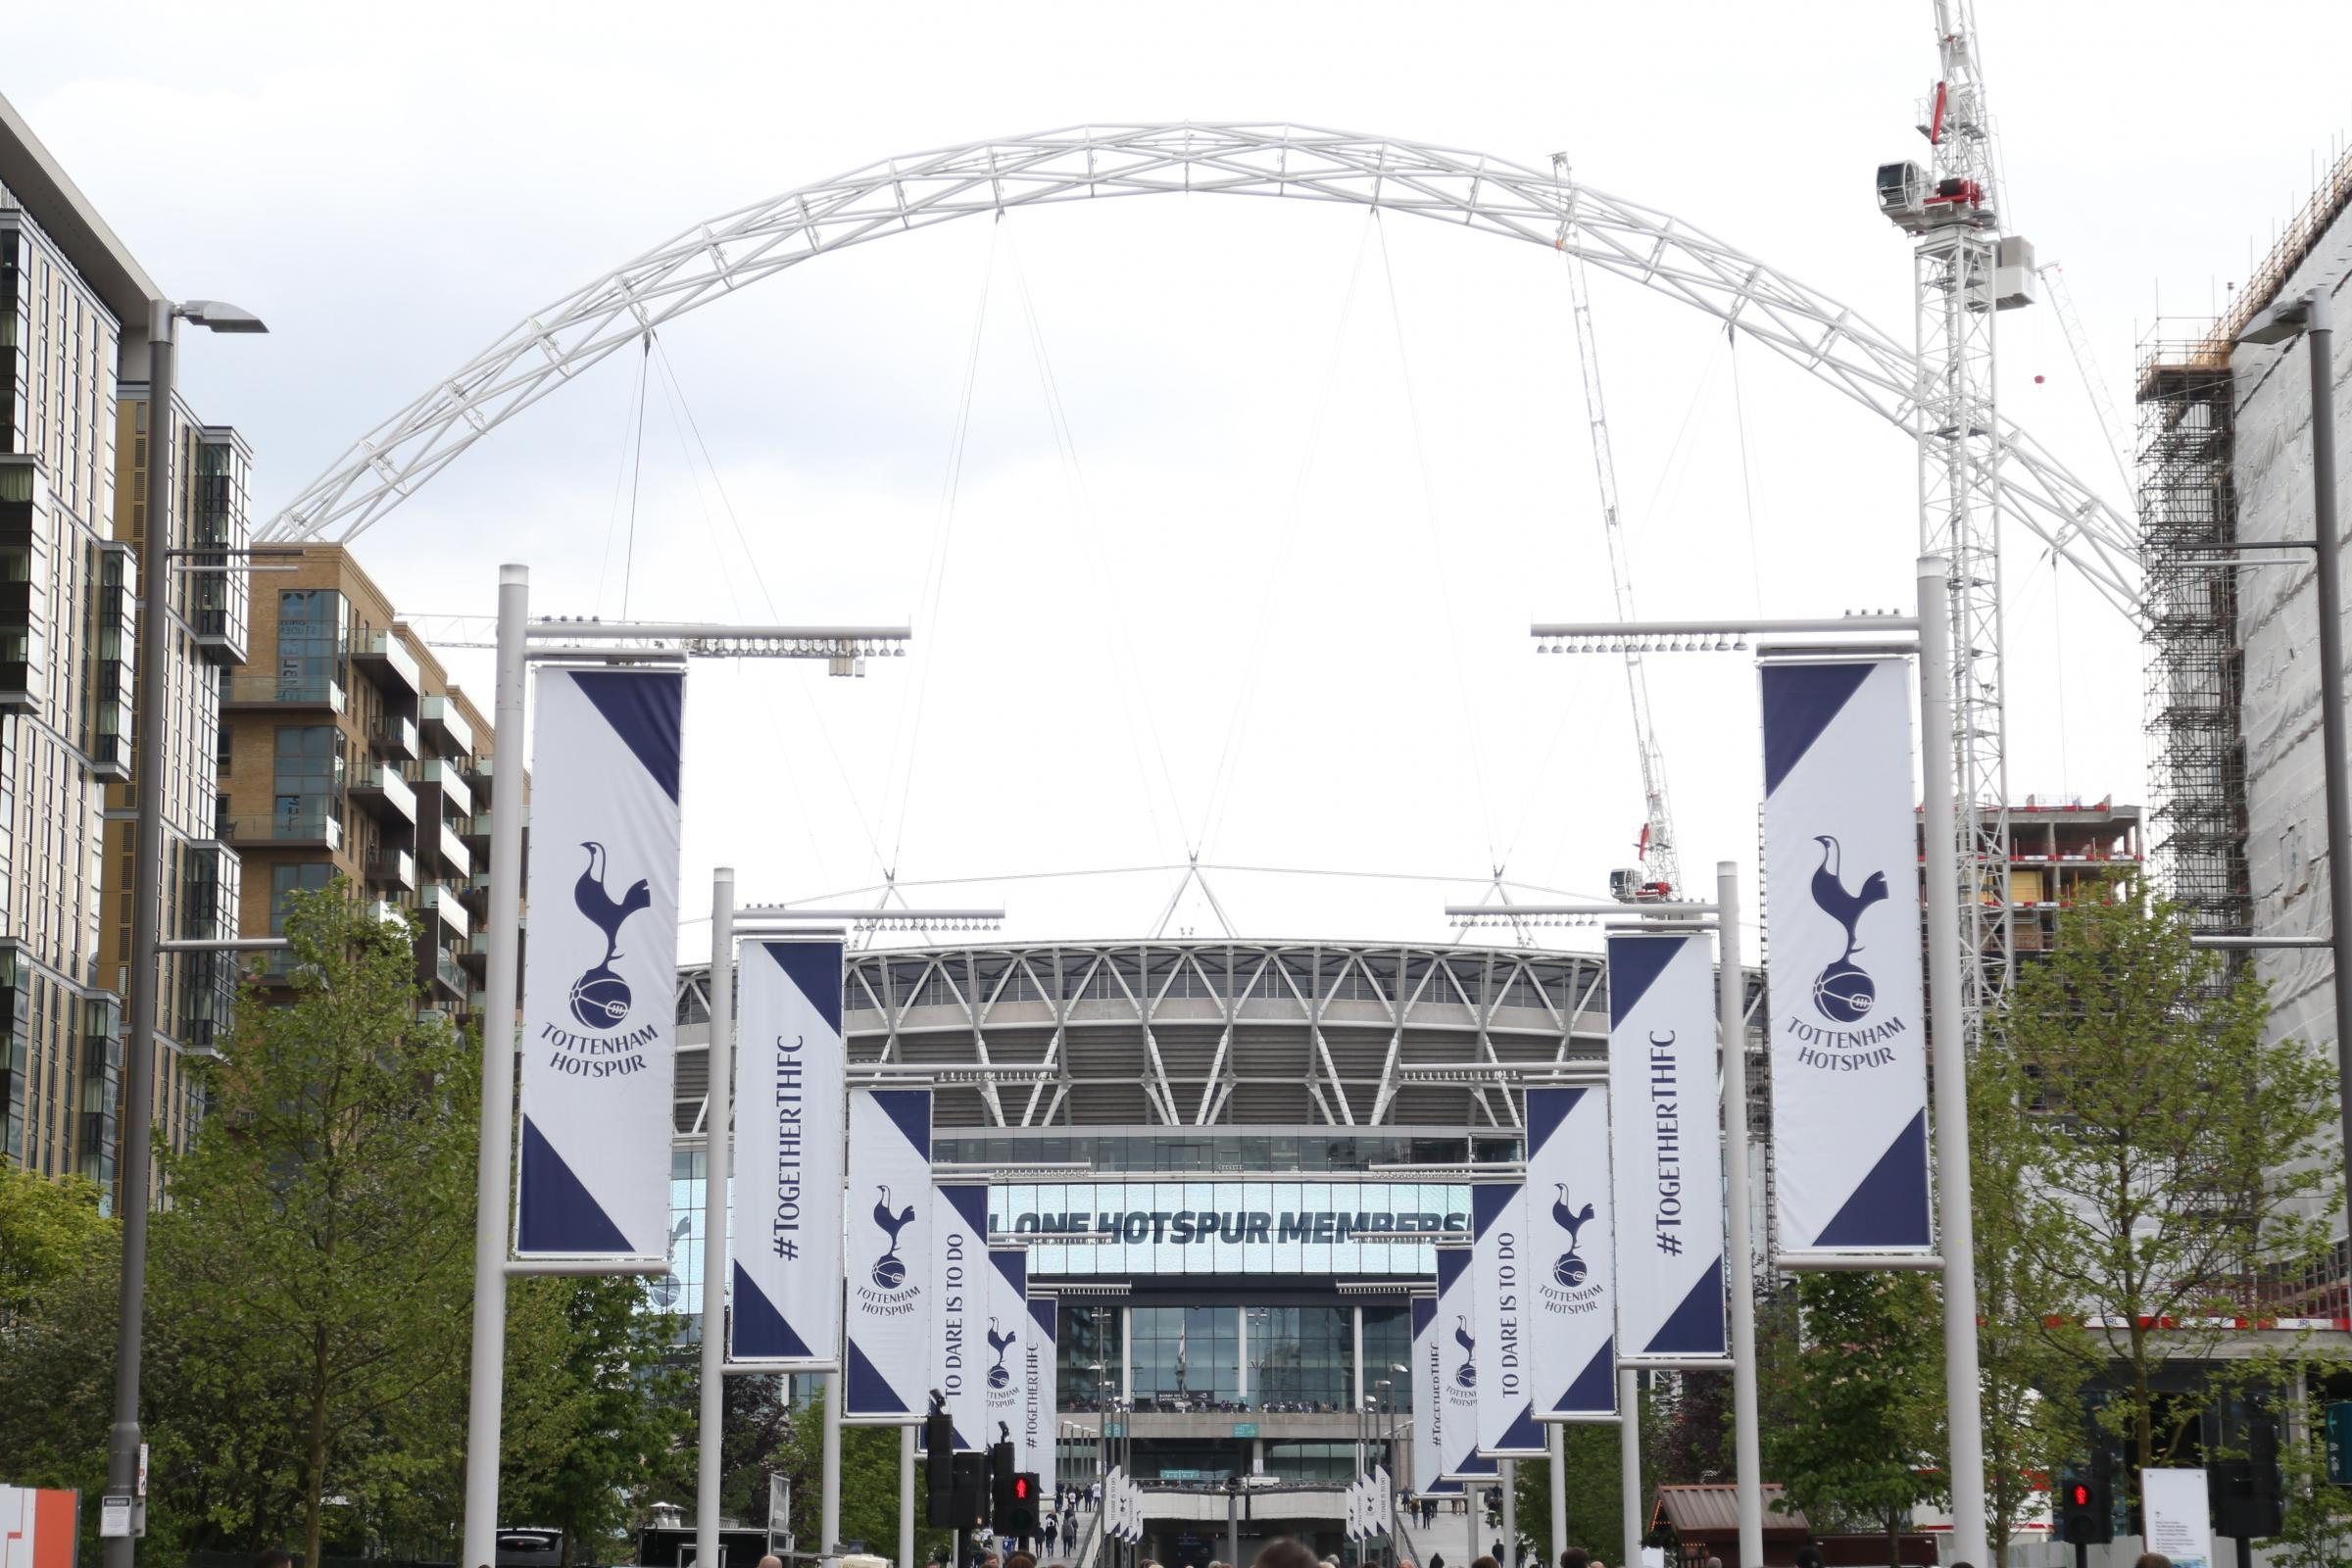 Tottenham will be back at Wembley for one game against Fulham on August 18